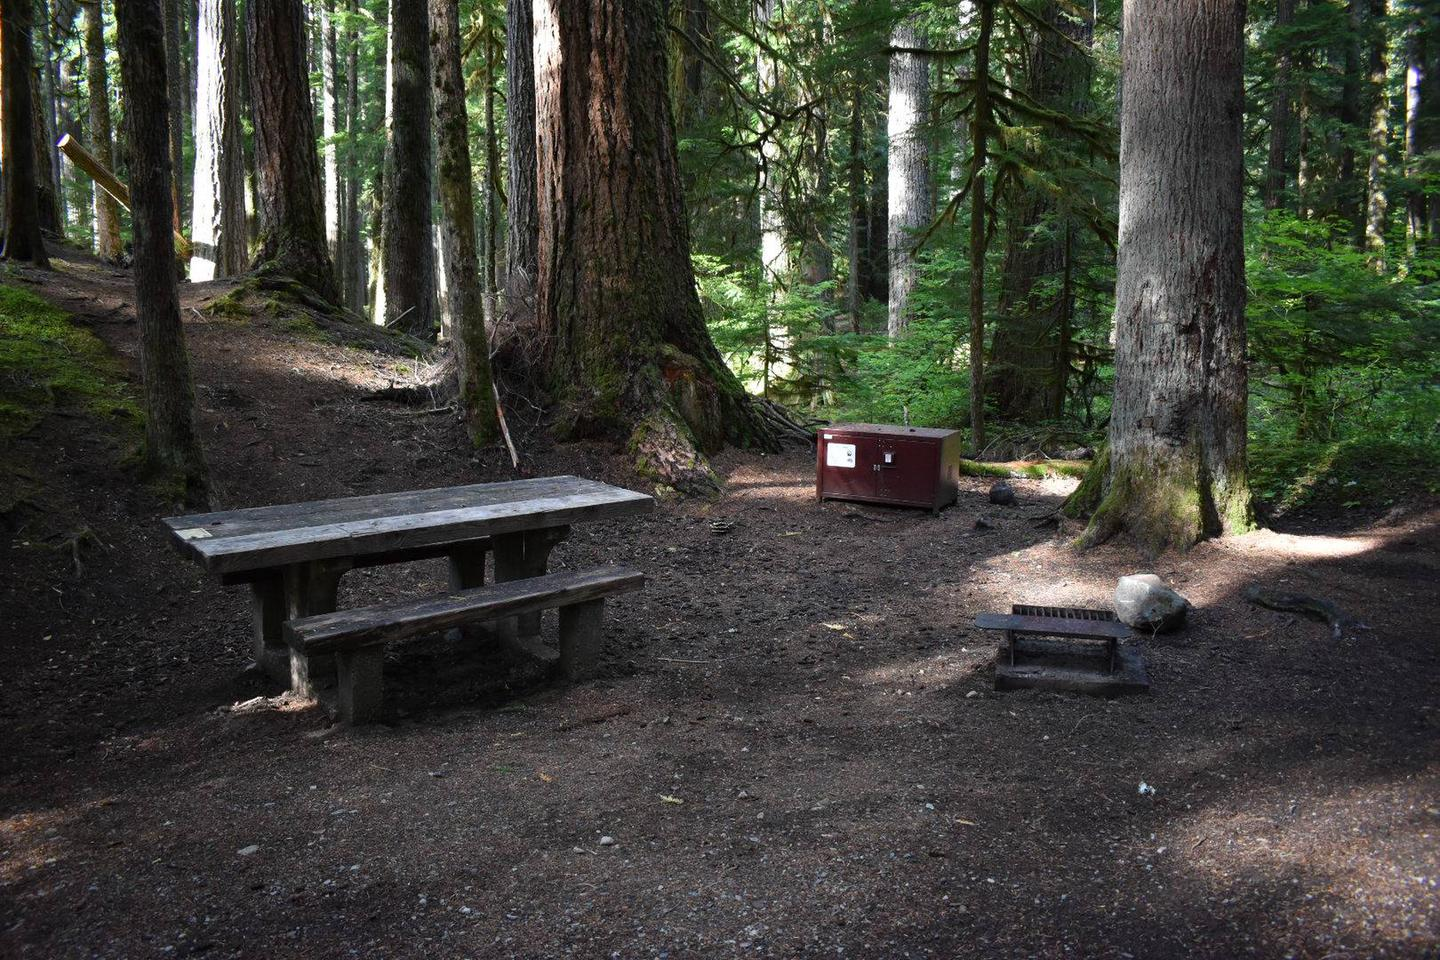 Ohanapecosh Campground - Site D016 AmenitiesCampers are provided with a picnic table, food storage box, and fire pit.